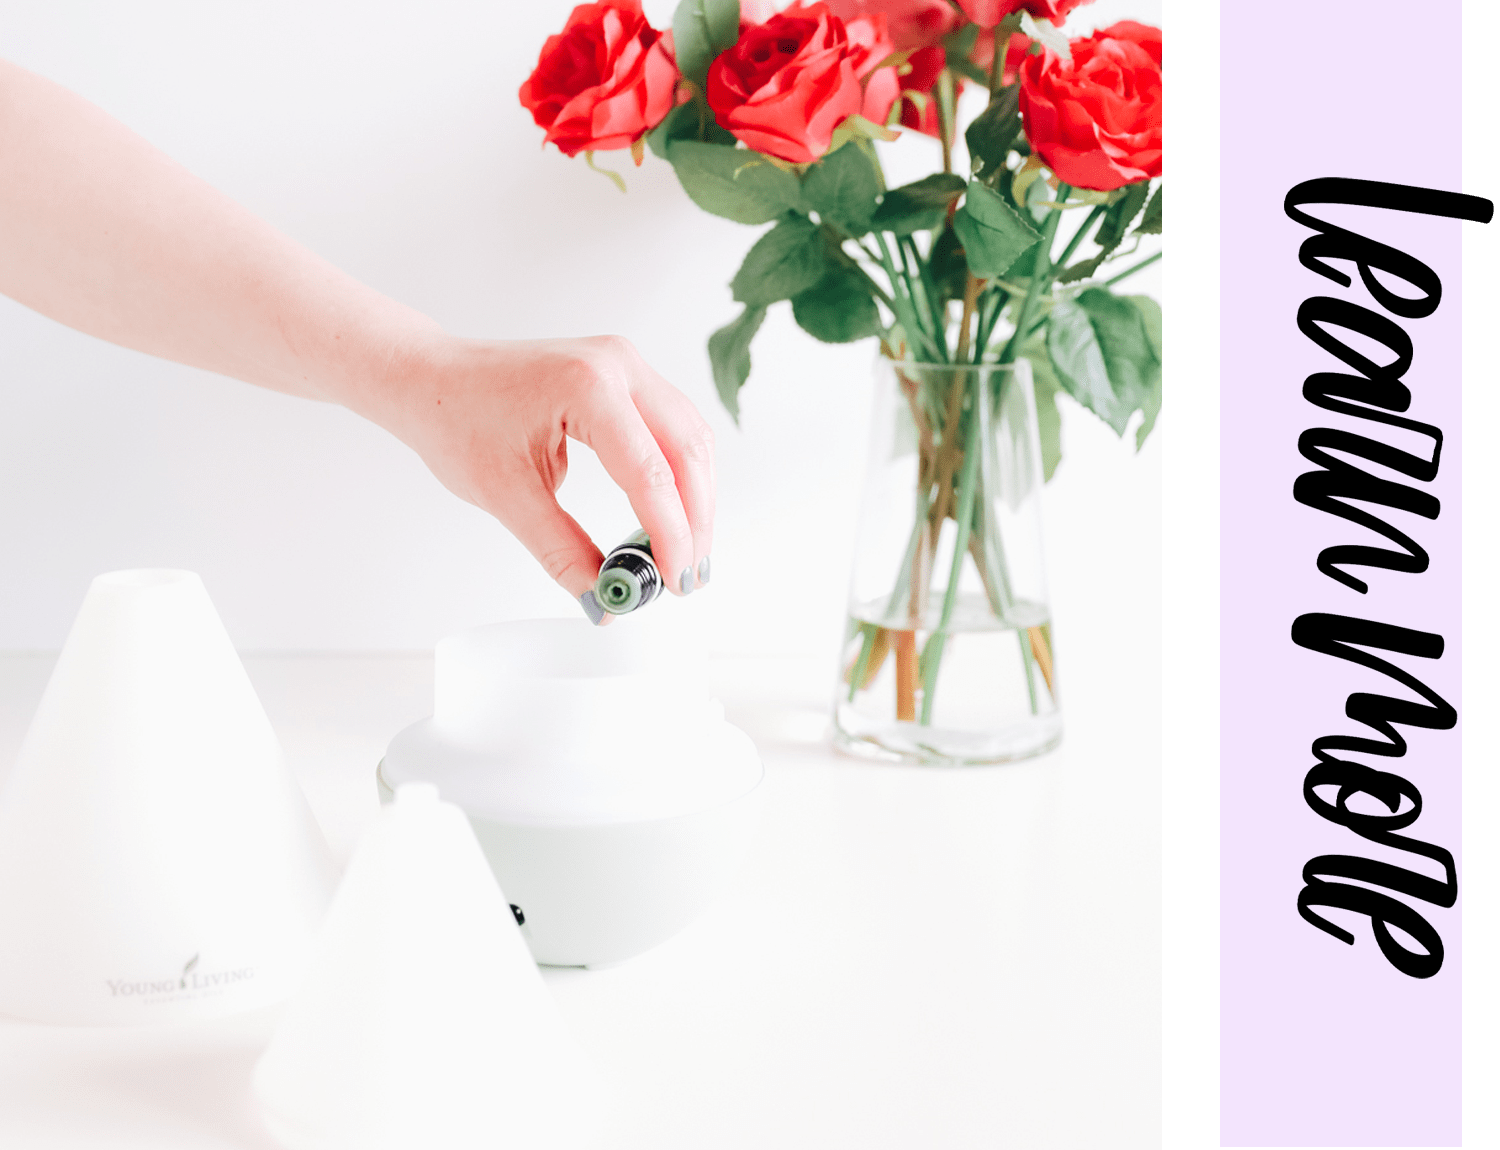 Want to learn more? - Trying a new thing is sometimes overwhelming. I get it!I'm all about keeping things simple, and starting with the basics. Check out my blog posts on essential oils, and see what this stuff is all about.